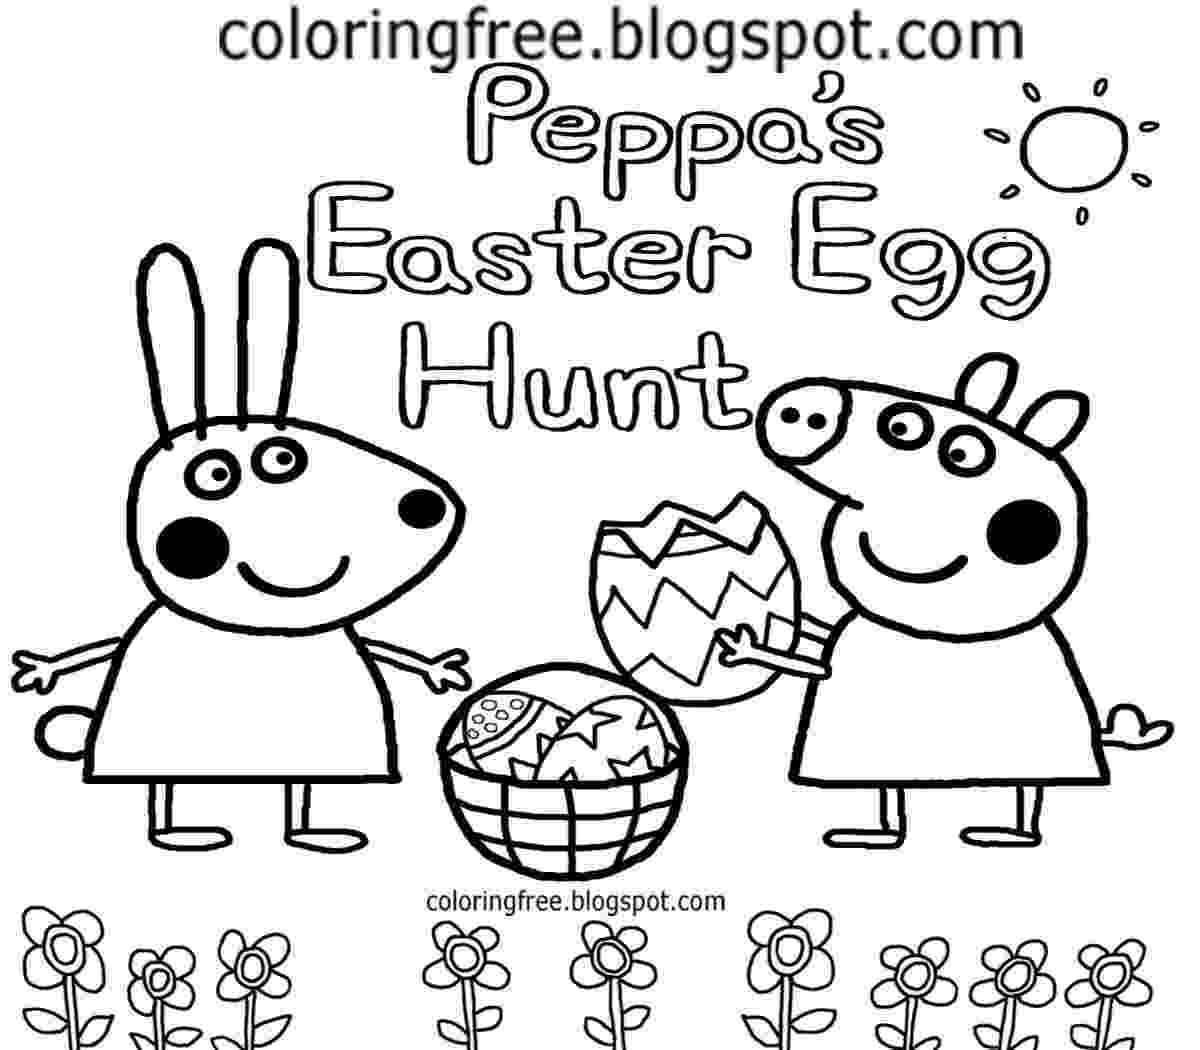 peppa pig color peppa pig coloring pages coloring pages to download and peppa pig color